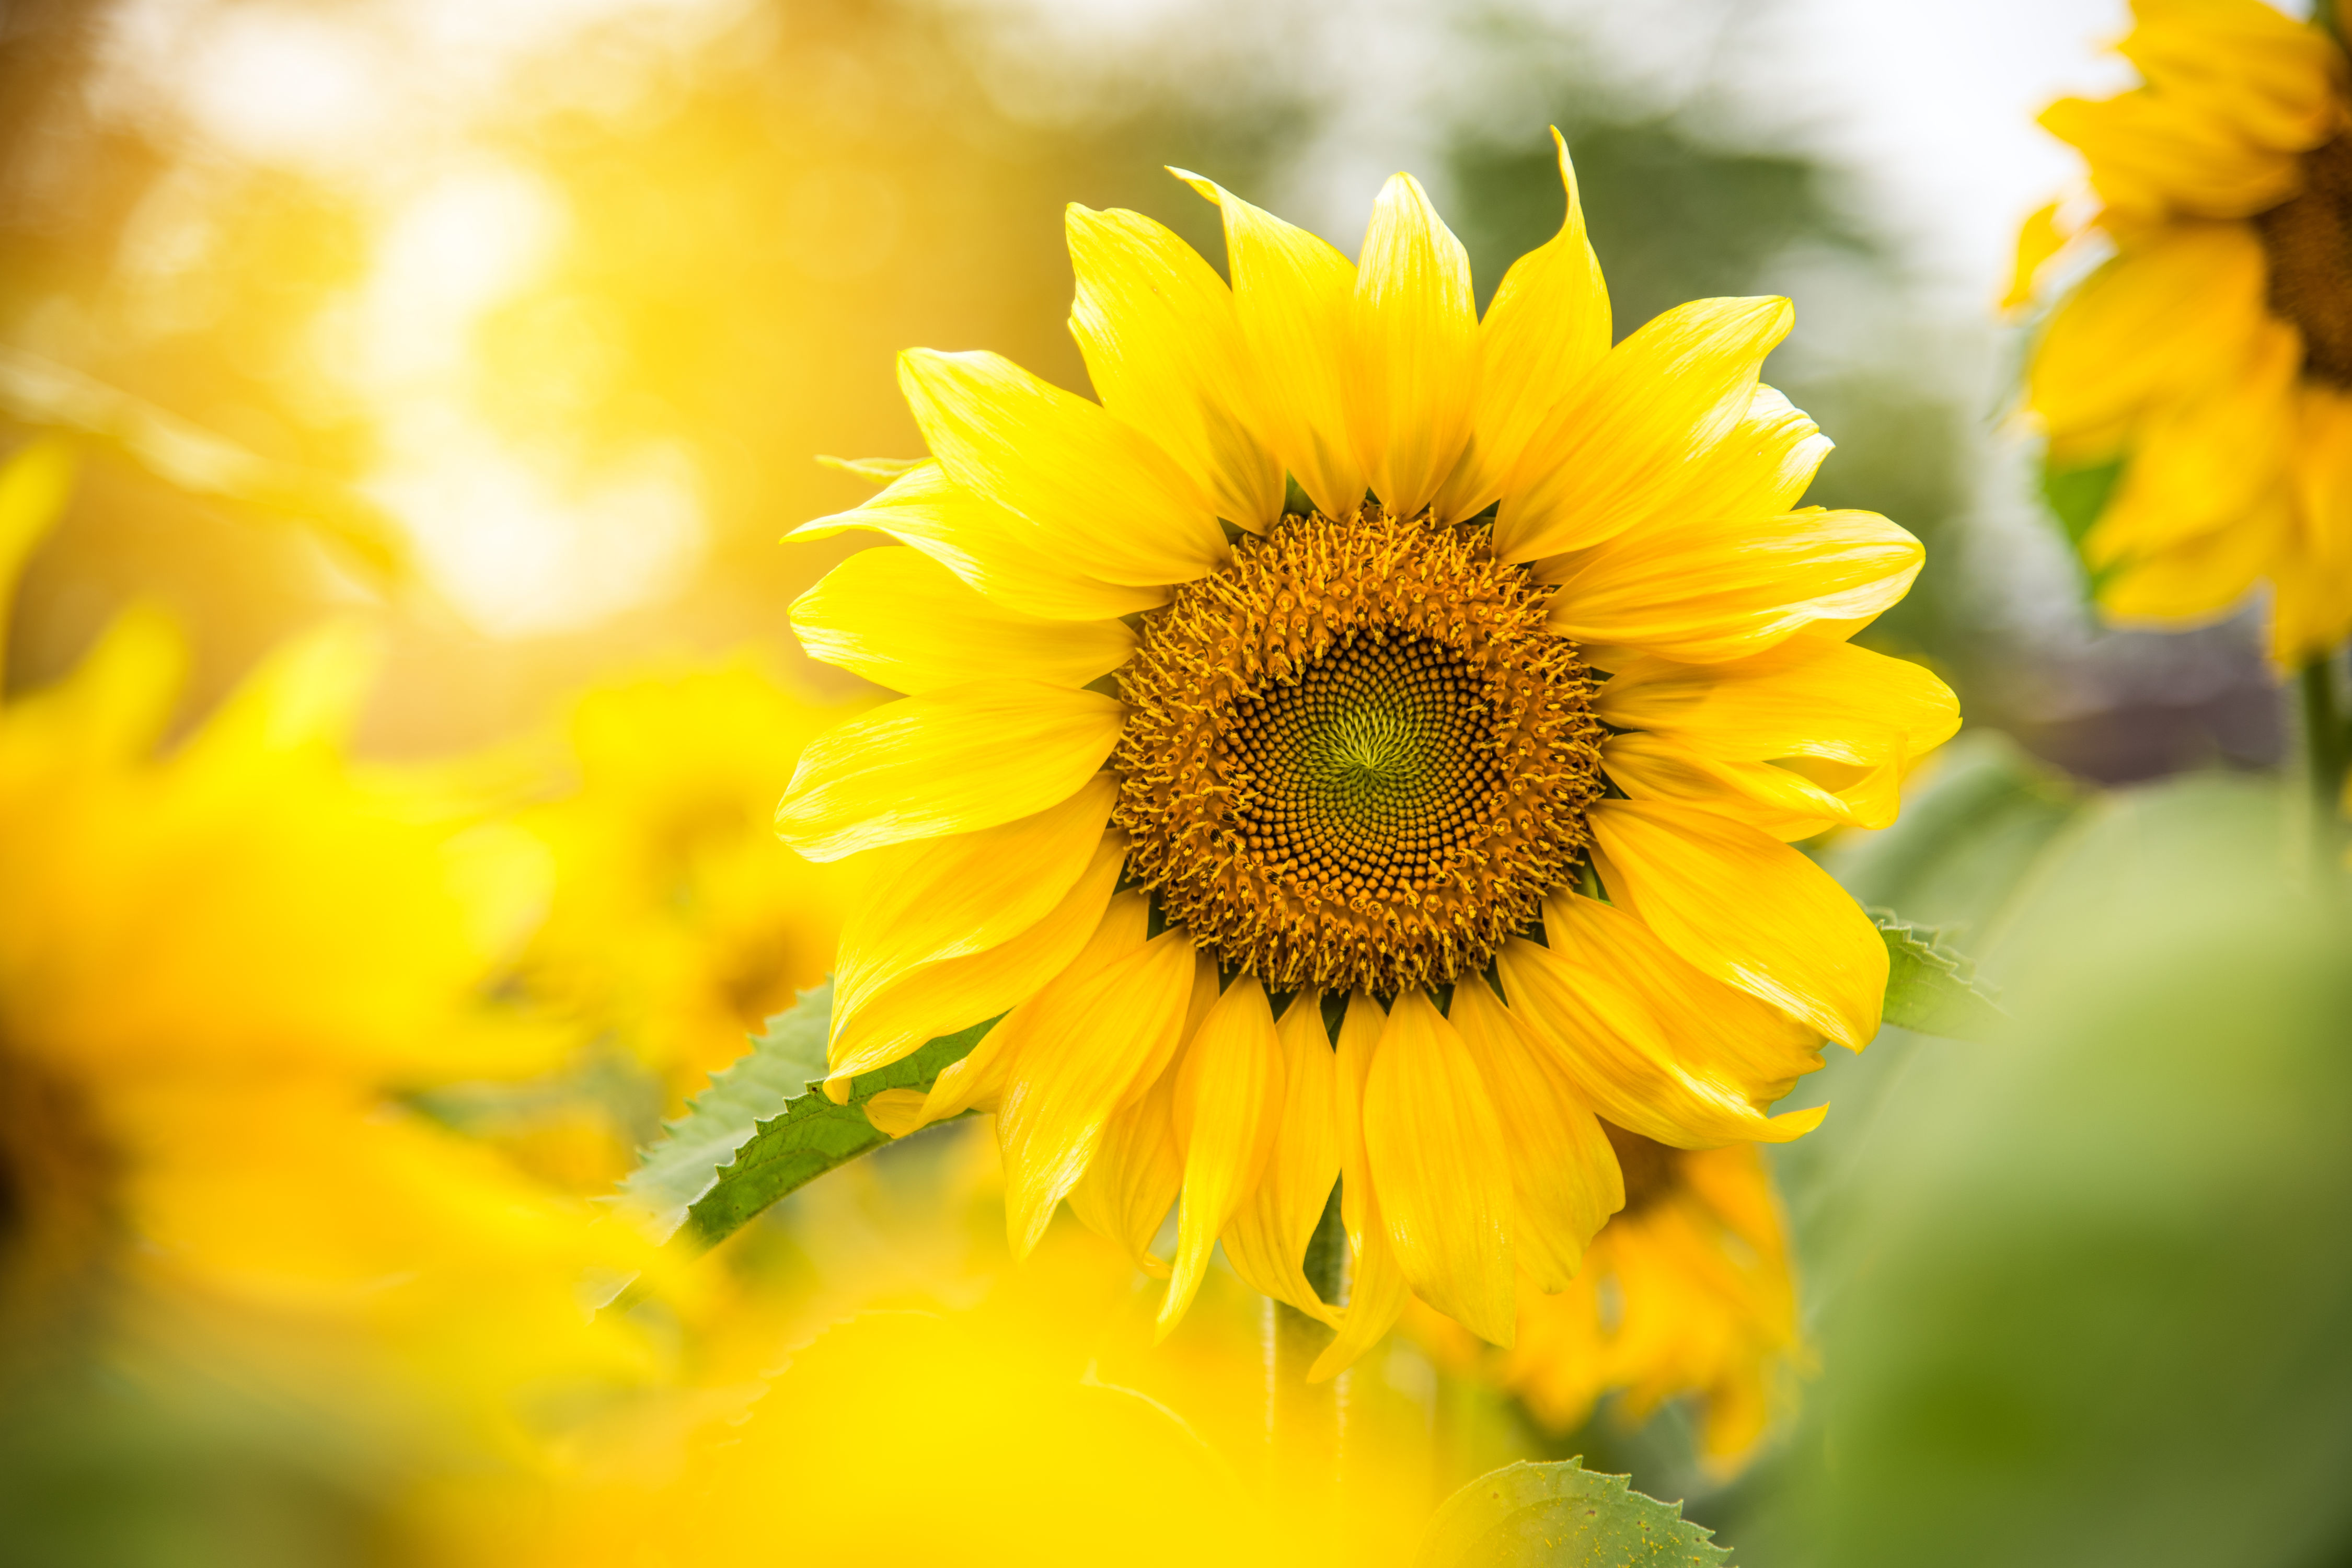 Marvel at 70 Acres of Sunflowers in Knoxville, Tennessee, This Weekend